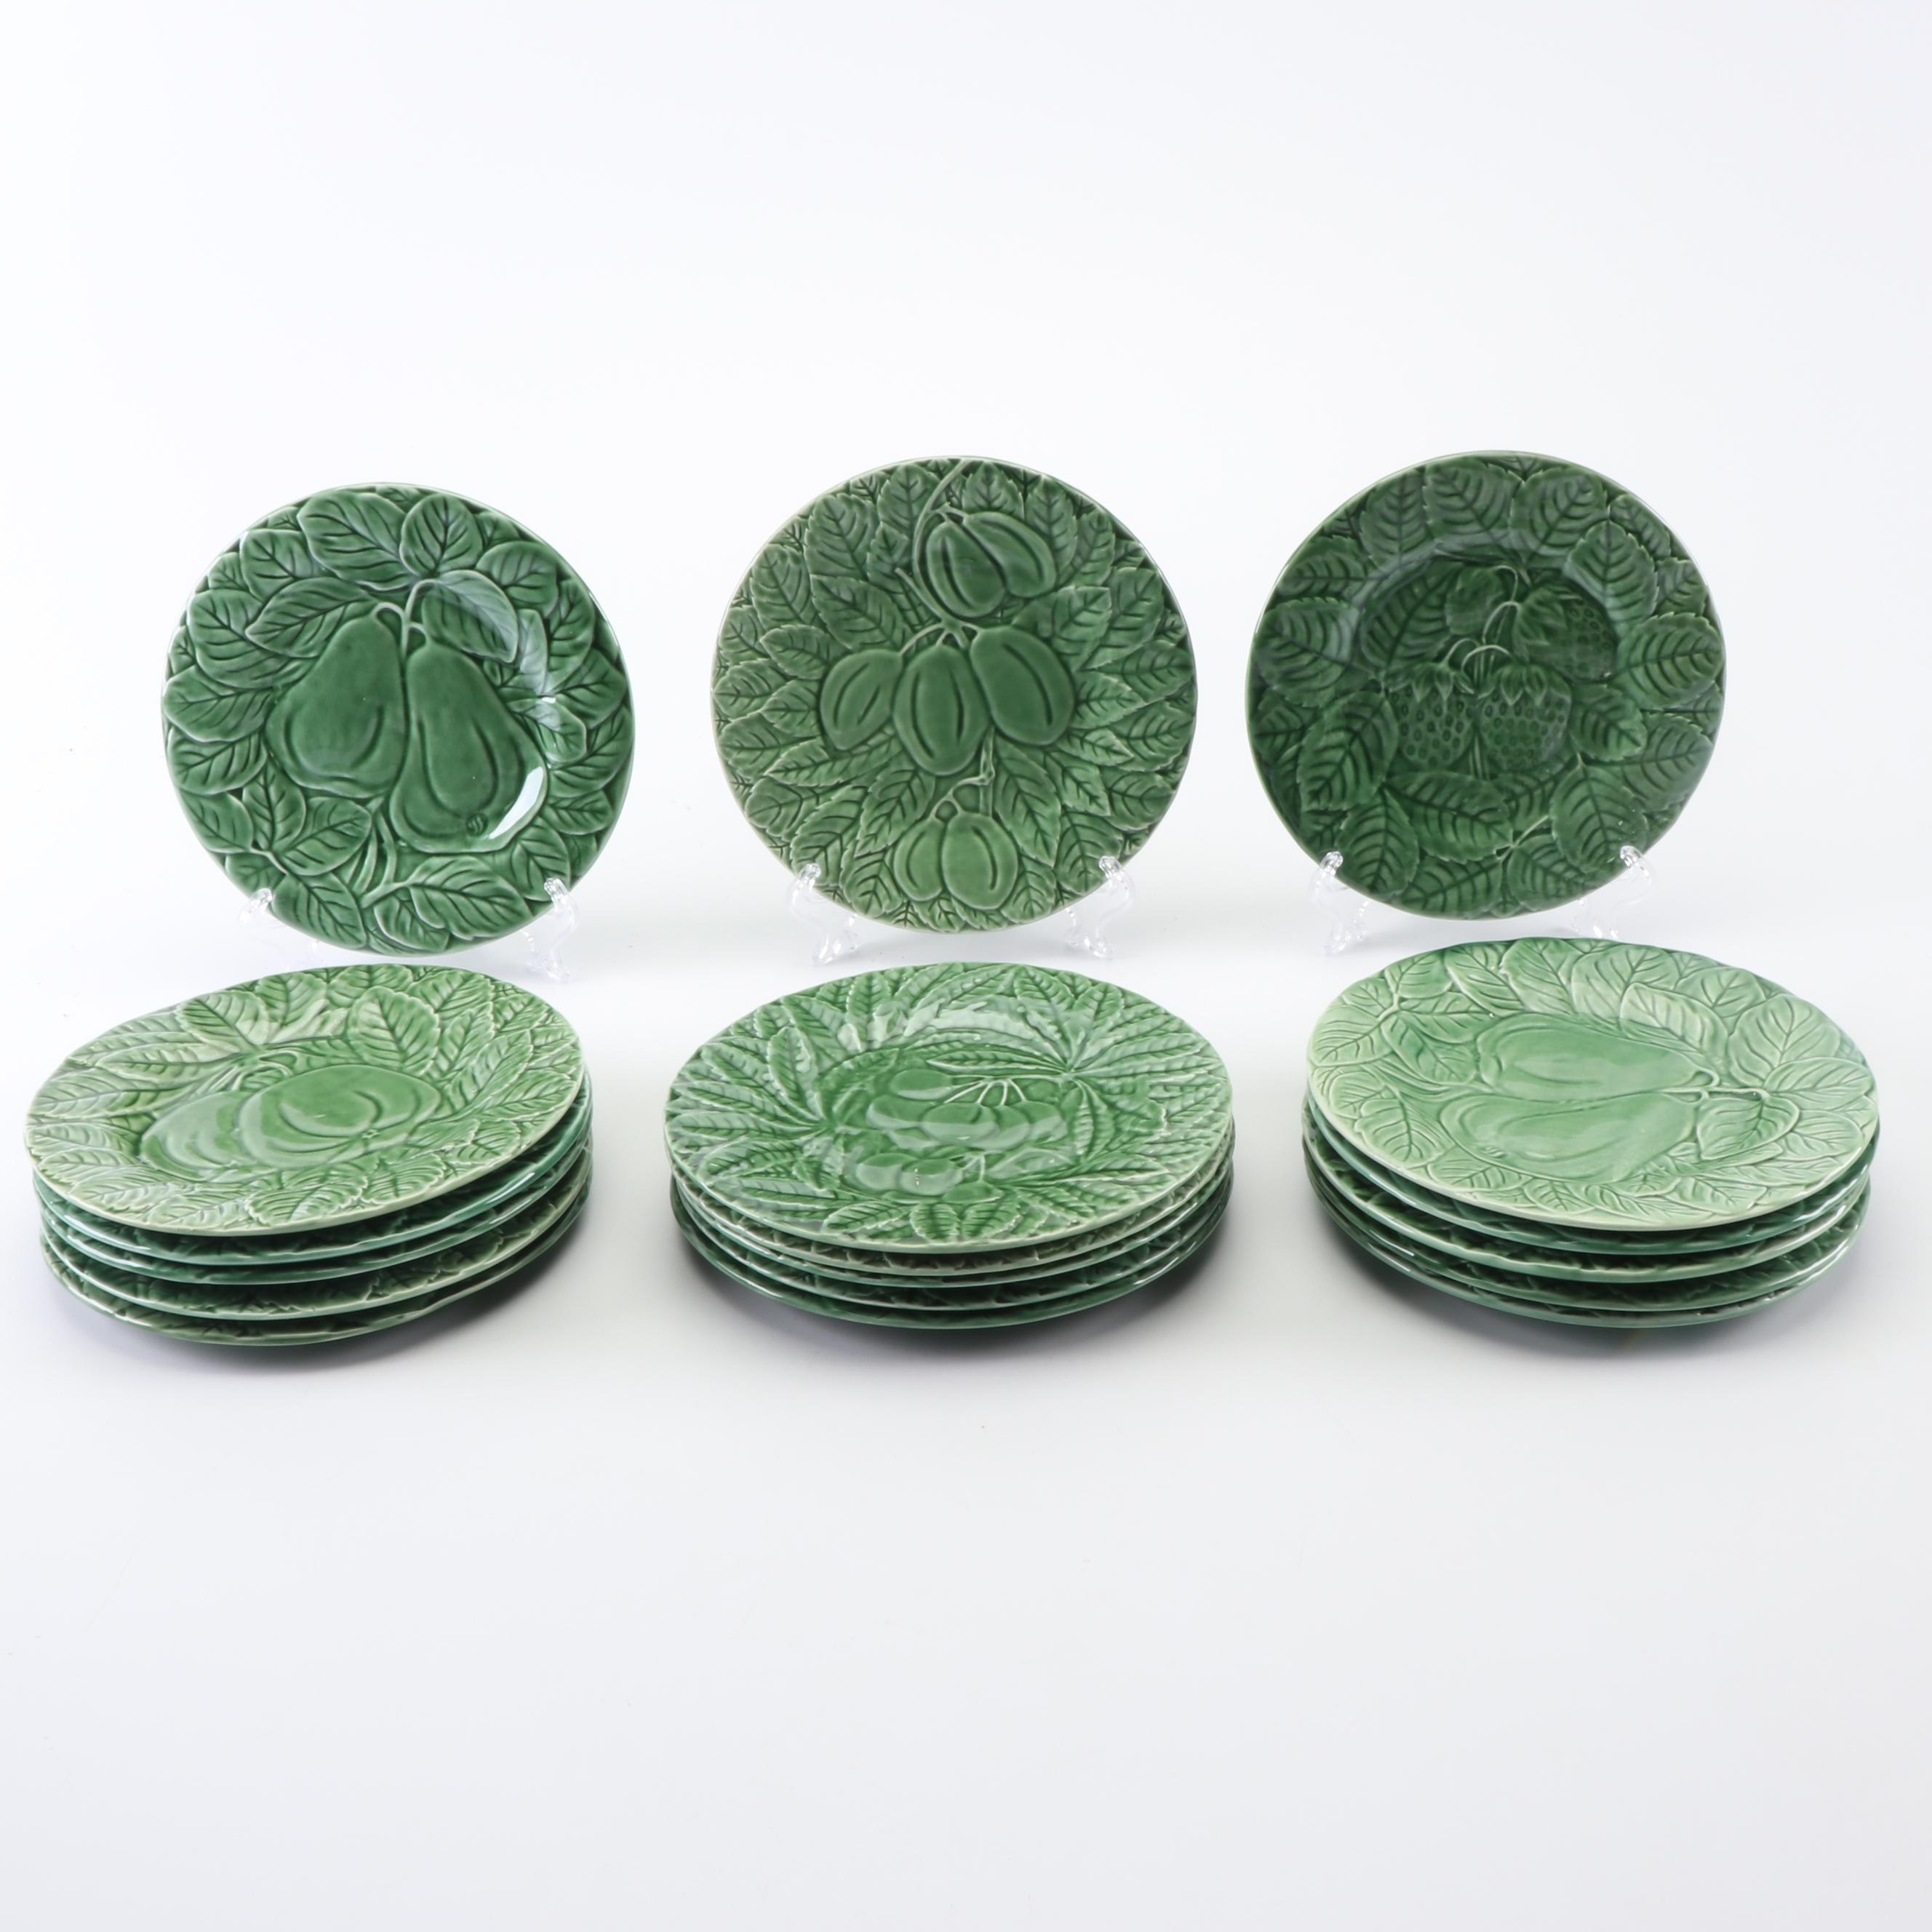 Bordallo Pinheiro Green Fruit Motif Majolica Salad Plates